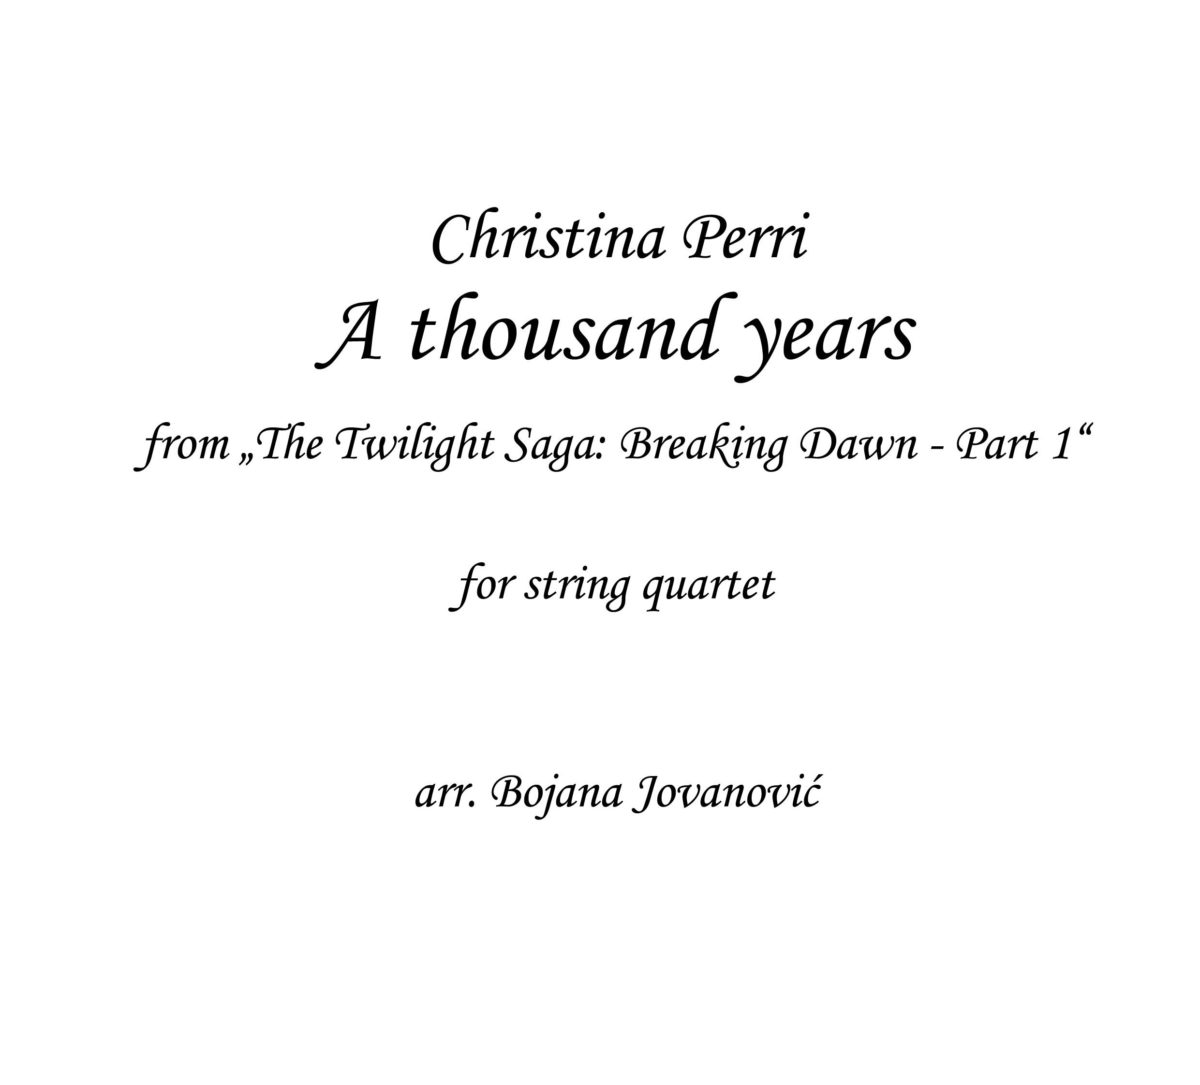 A thousand years (Christina Perri) - Sheet Music